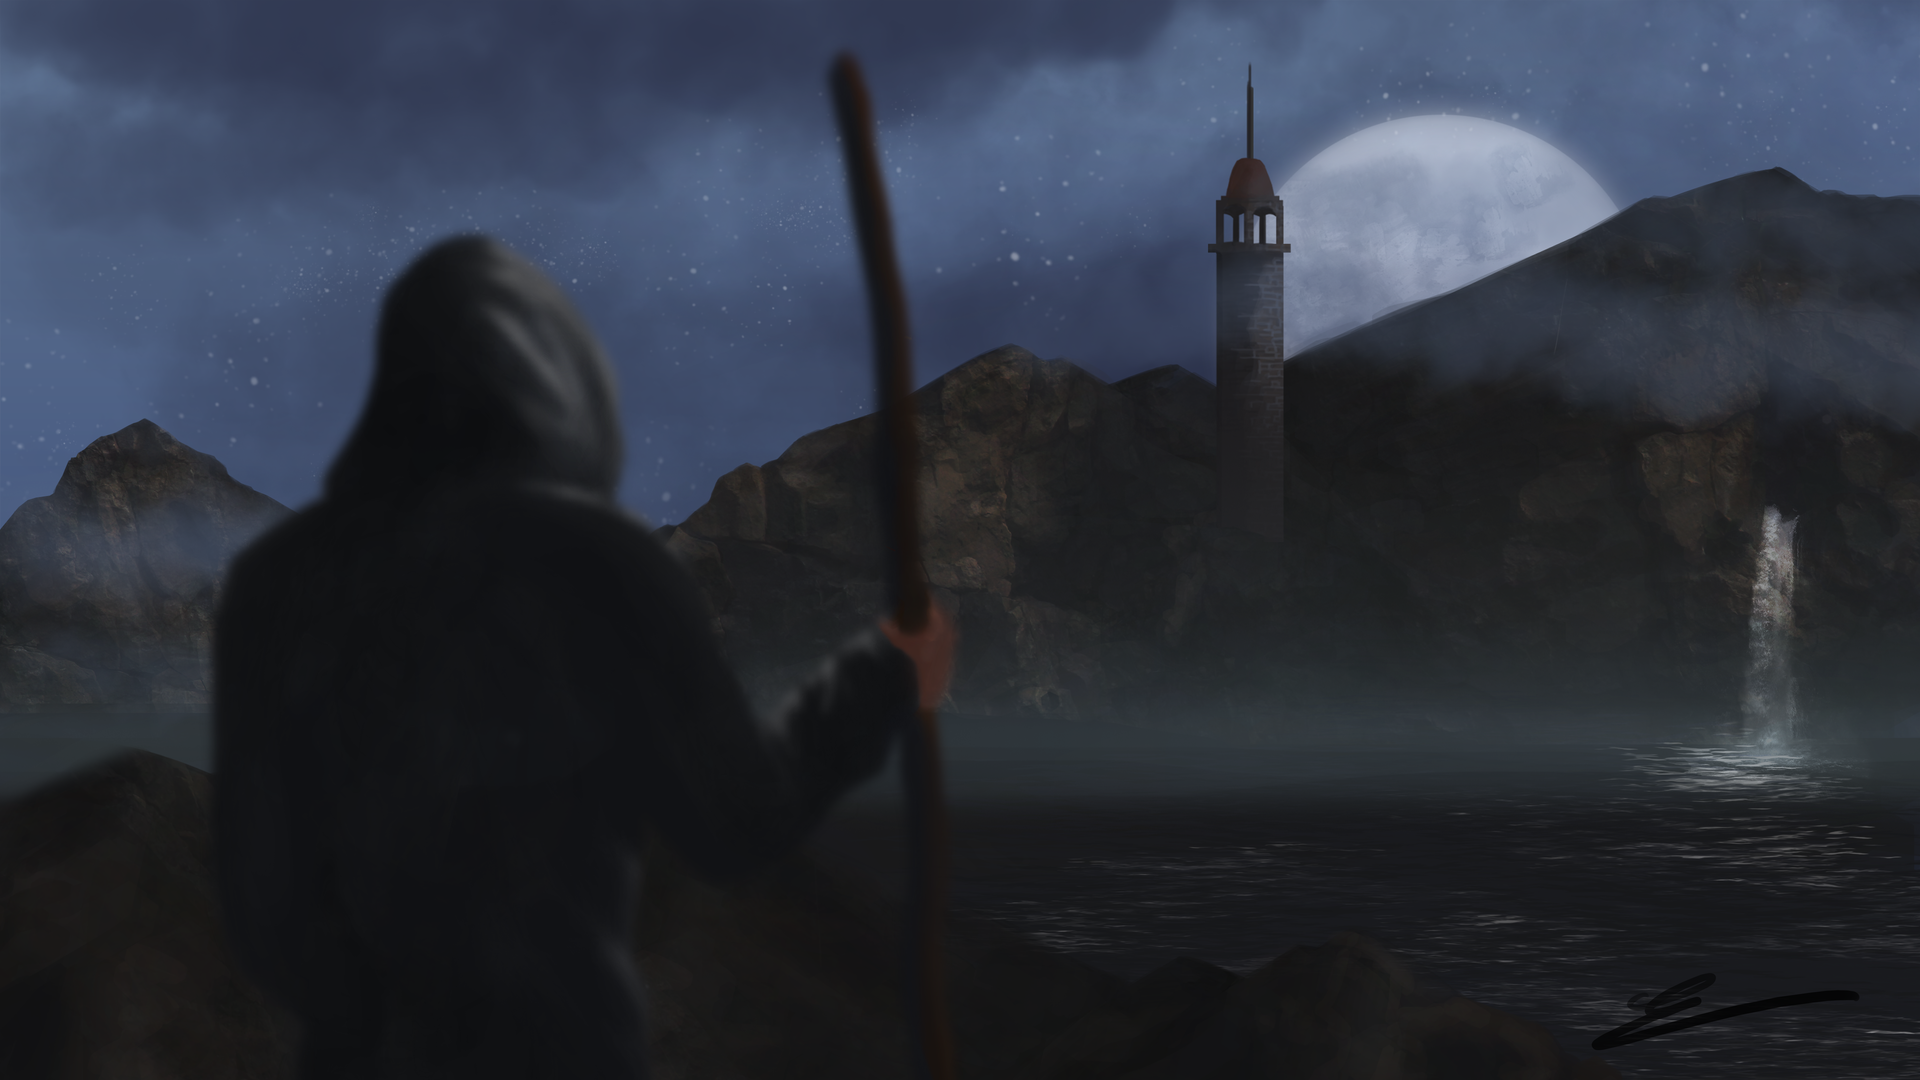 Digital Painting #2 Le Refuge par Sarnek